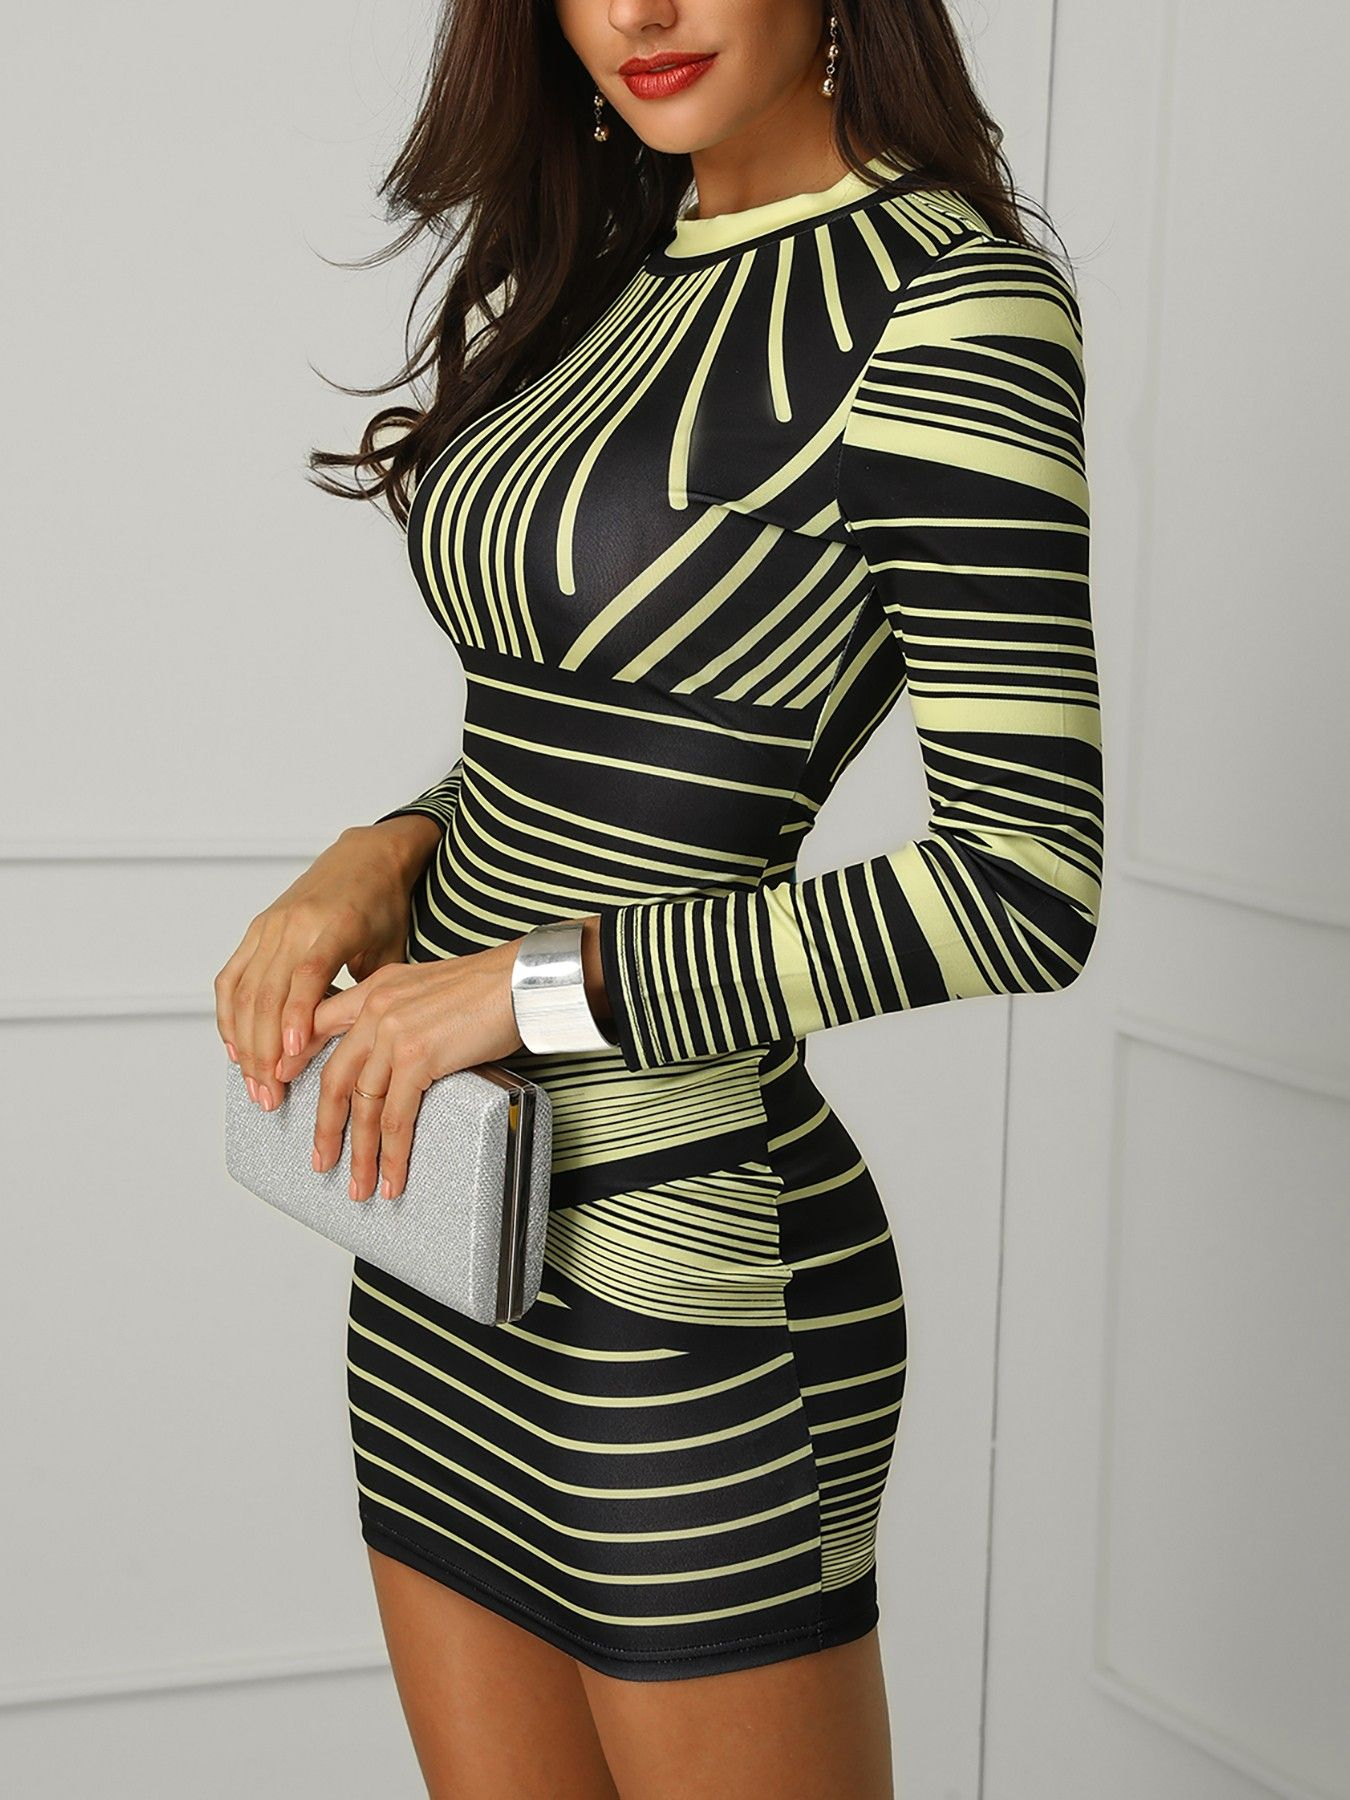 f3ed979800c7 Gradient Color Striped Bodycon Dress (S M L XL)  30.99